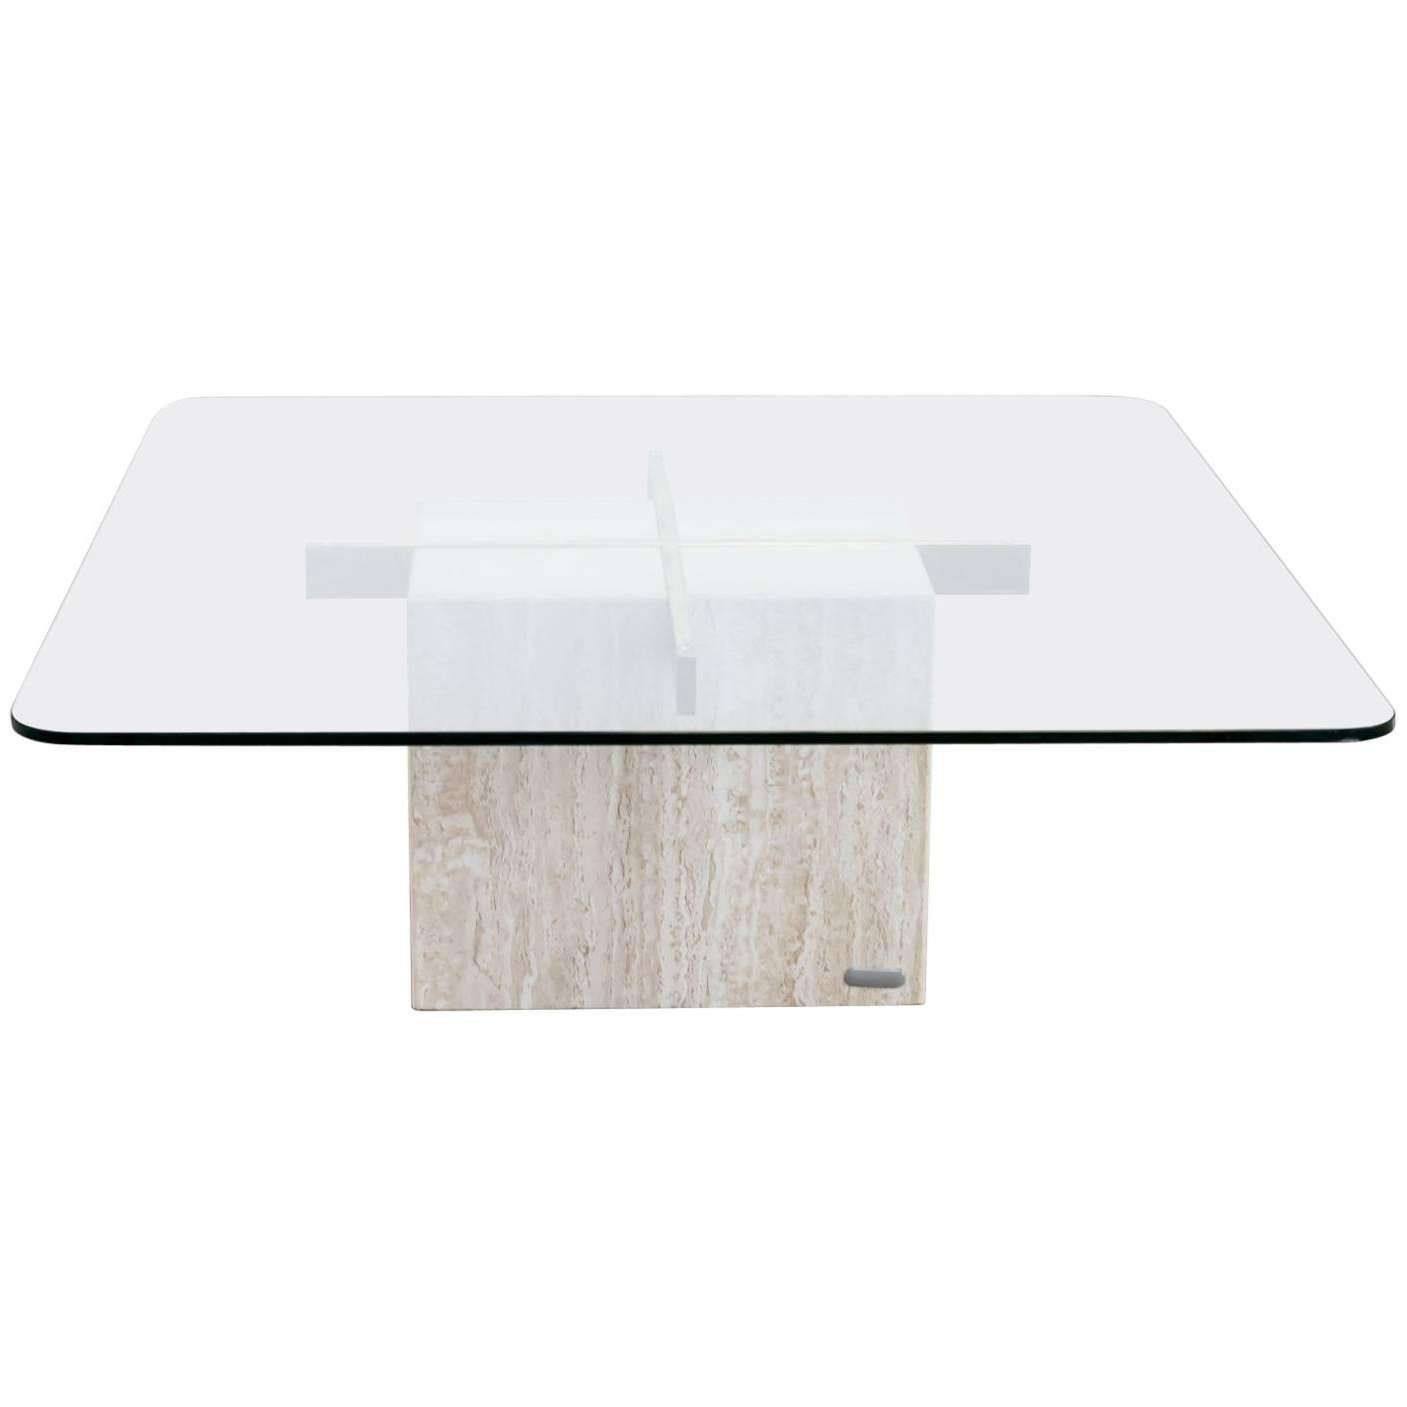 2018 Marble Base Glass Top Coffee Table Within Glass Top Coffee Table With Black Marble Base • Coffee Table Ideas (View 18 of 20)